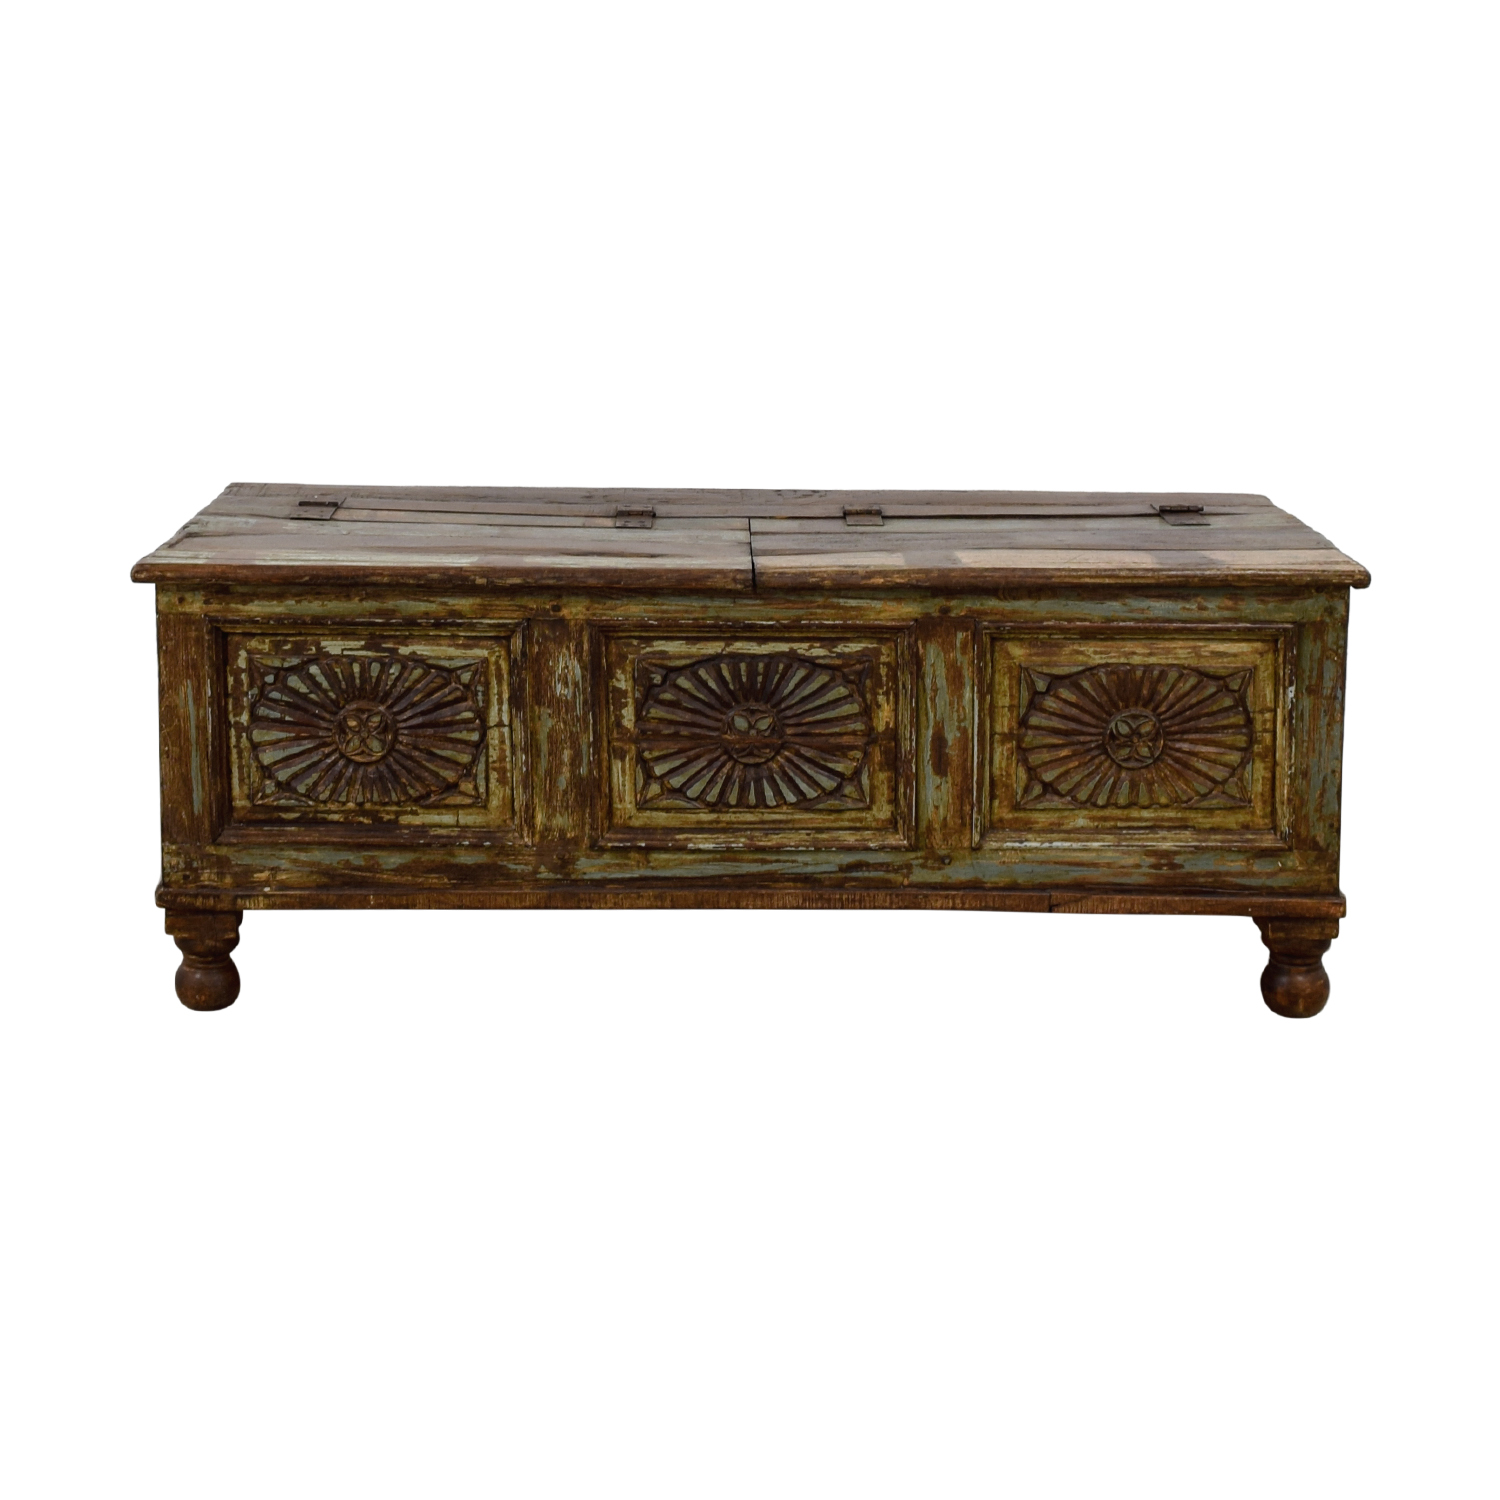 85 Off Vintage Carved Rustic Wood Storage Coffee Table Tables